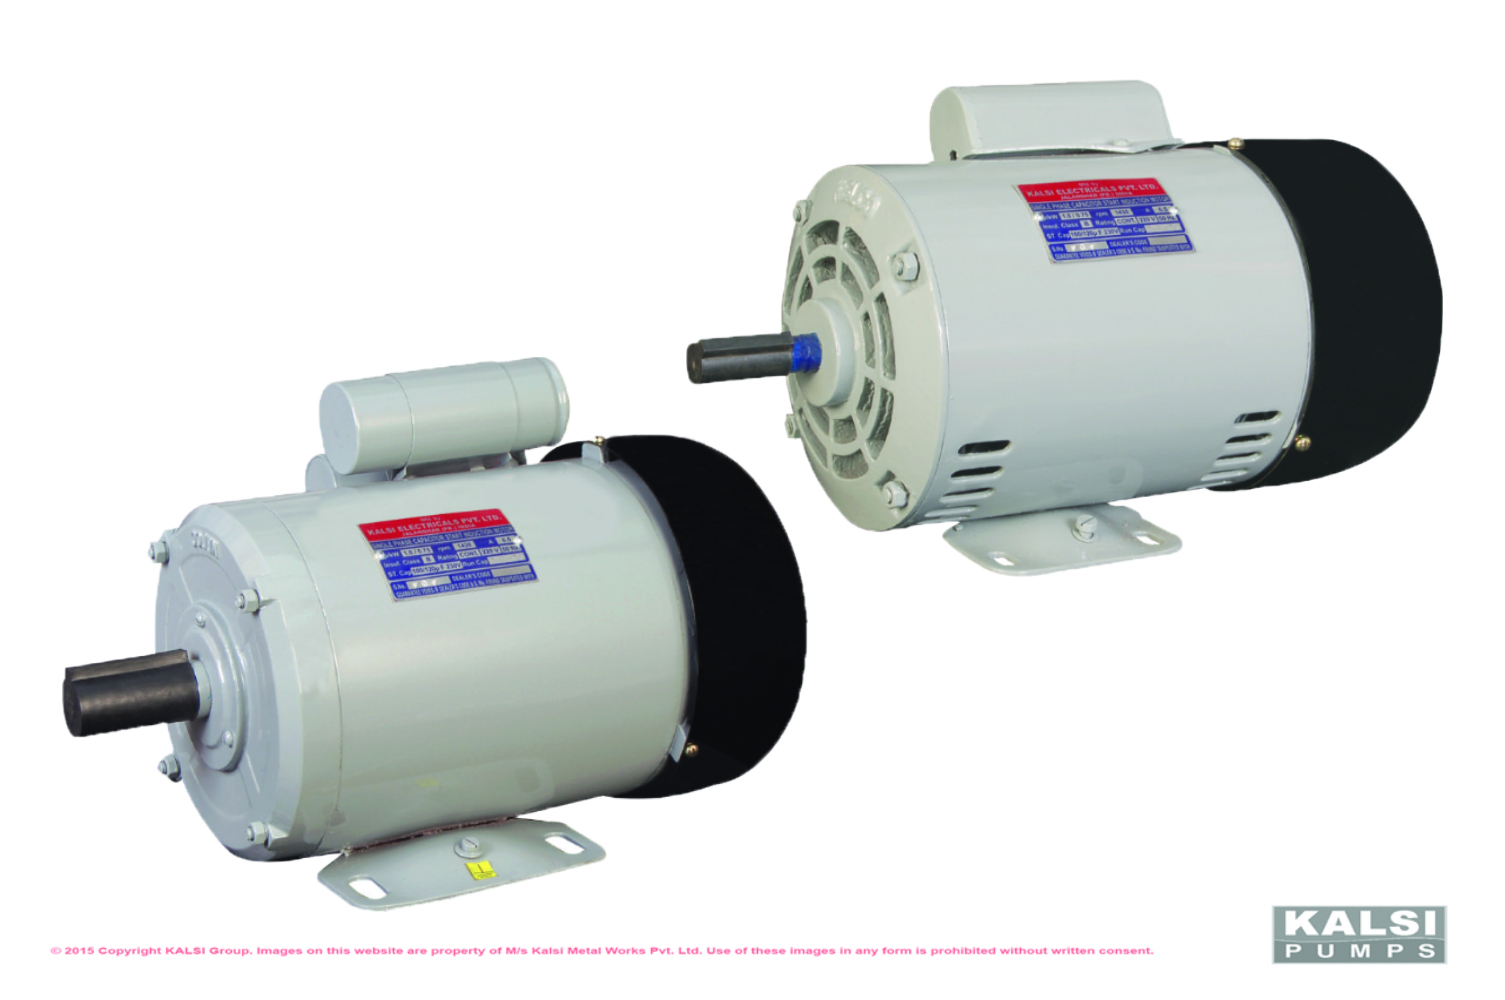 KALSI T.E.F.C. Squirrel Cage Single Phase Induction Motors